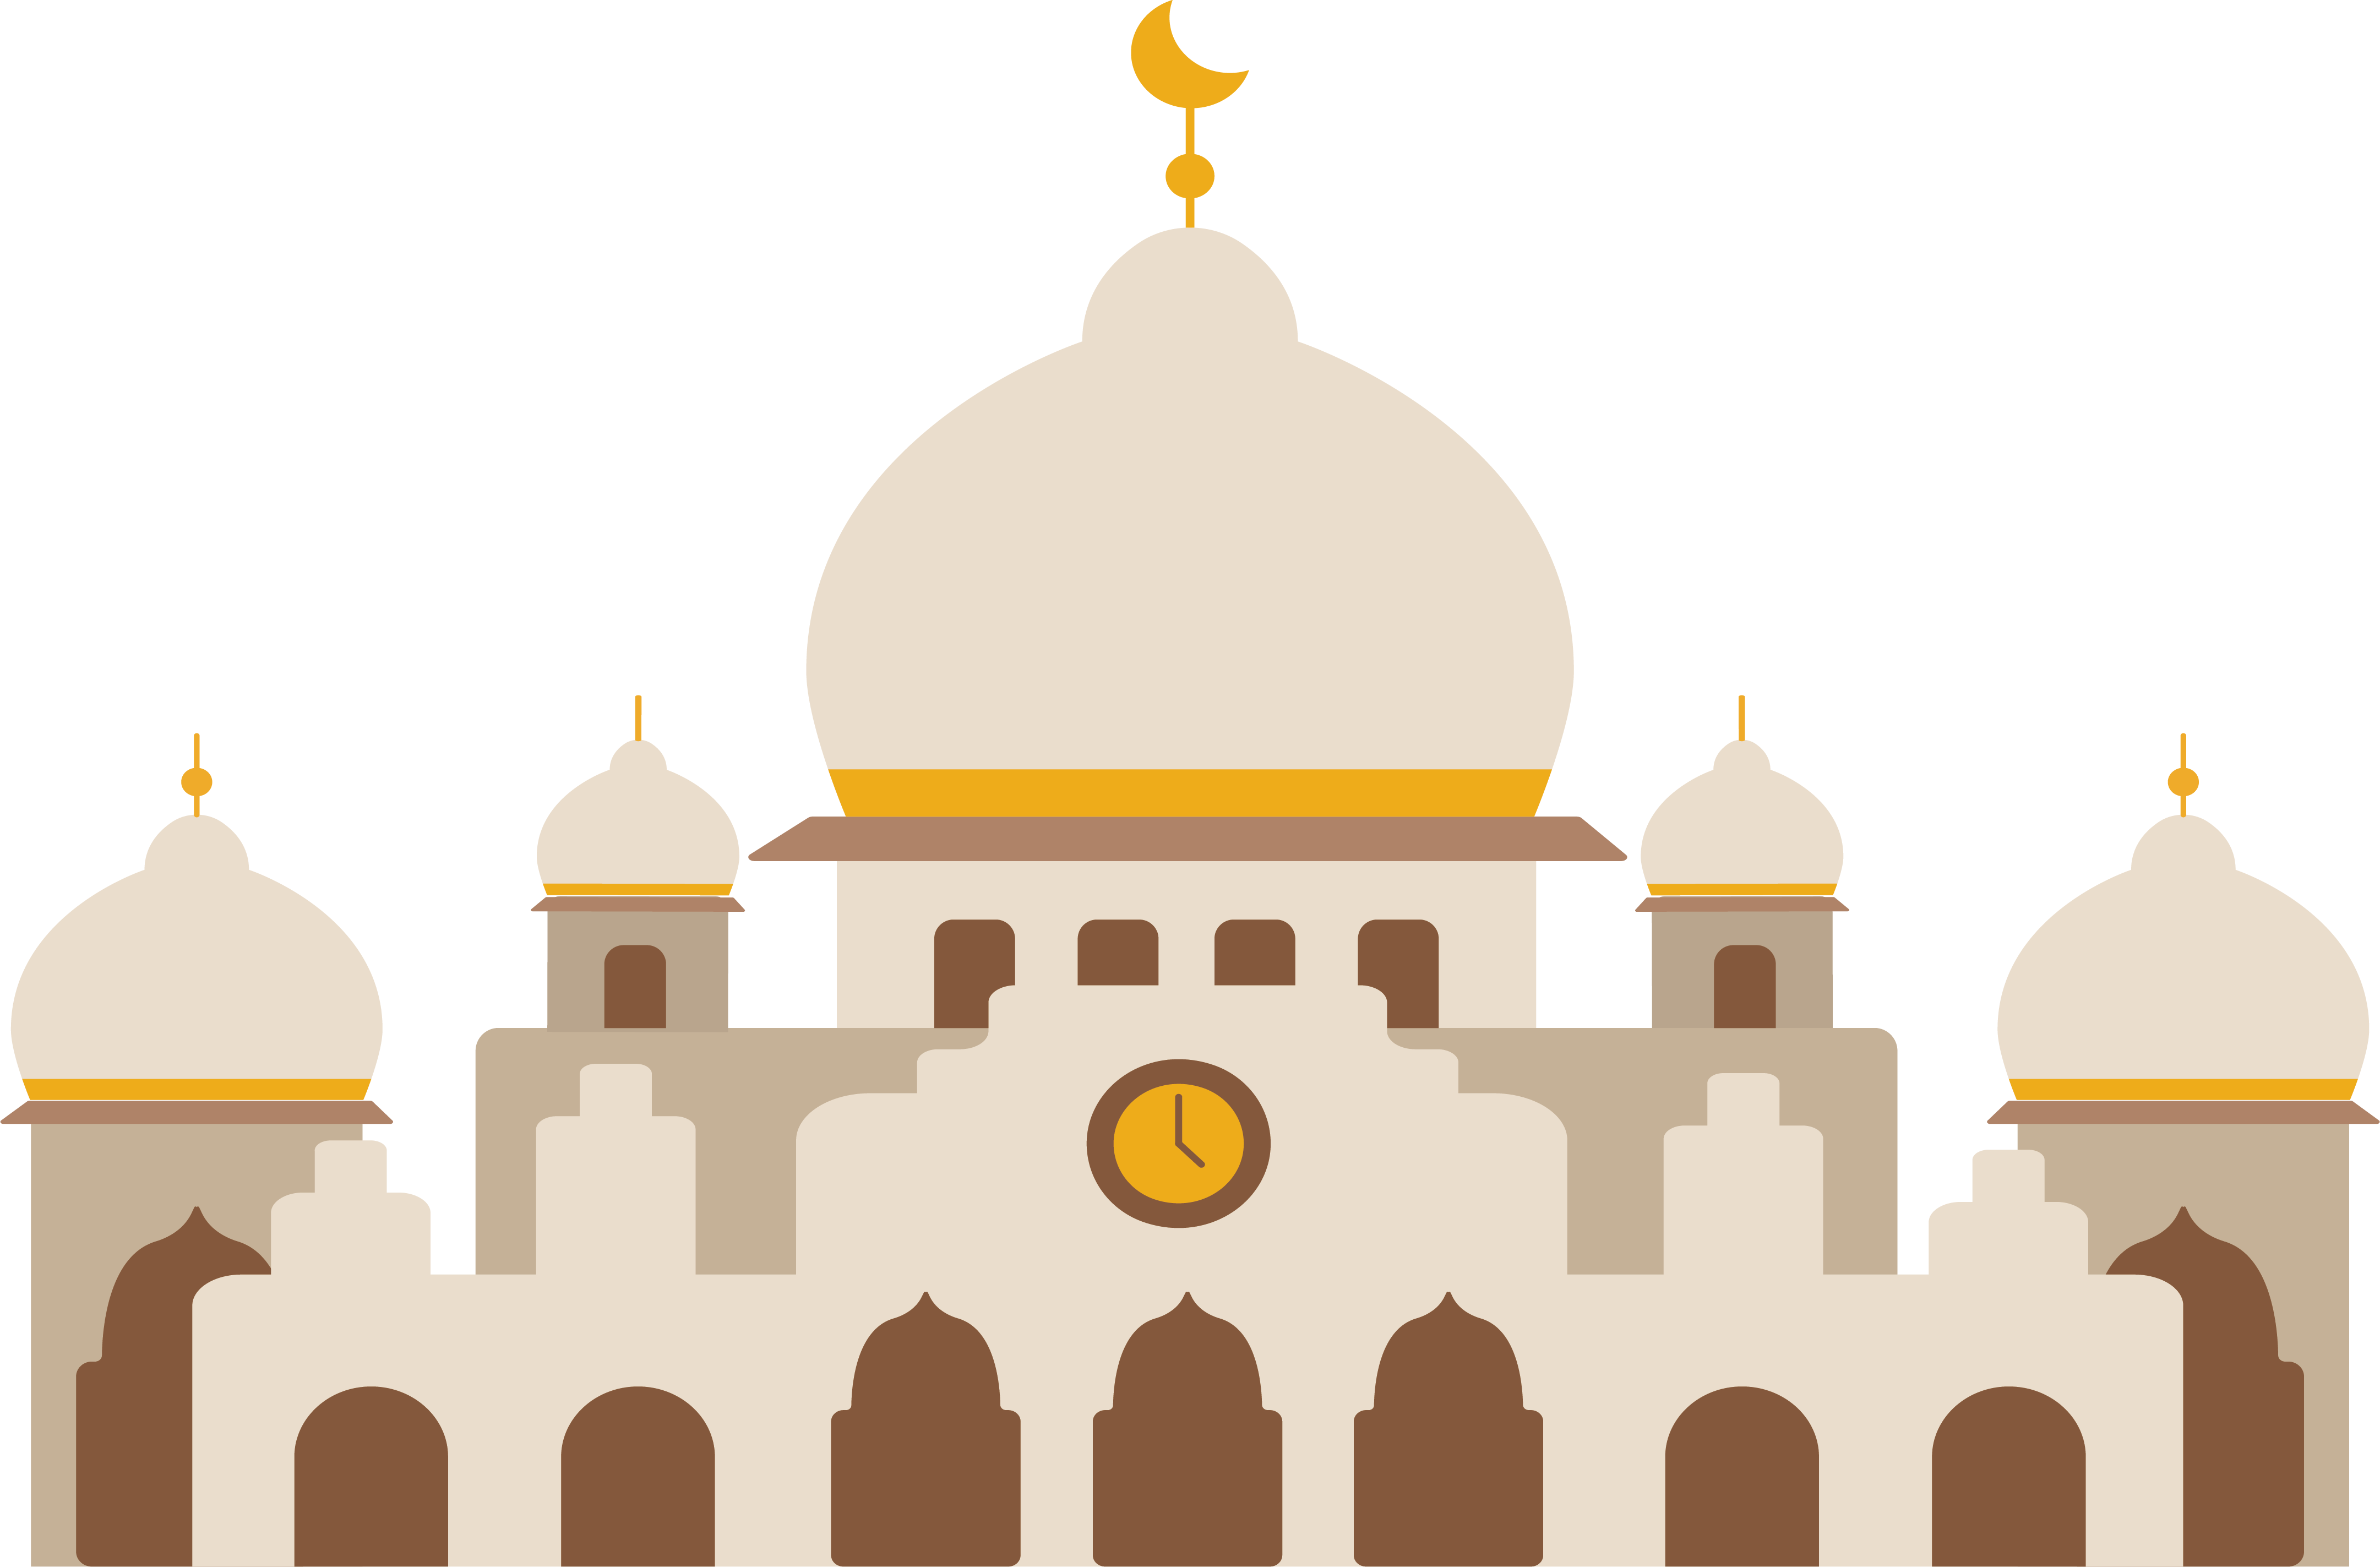 Clipart church place. Kaaba halal hegira islamic